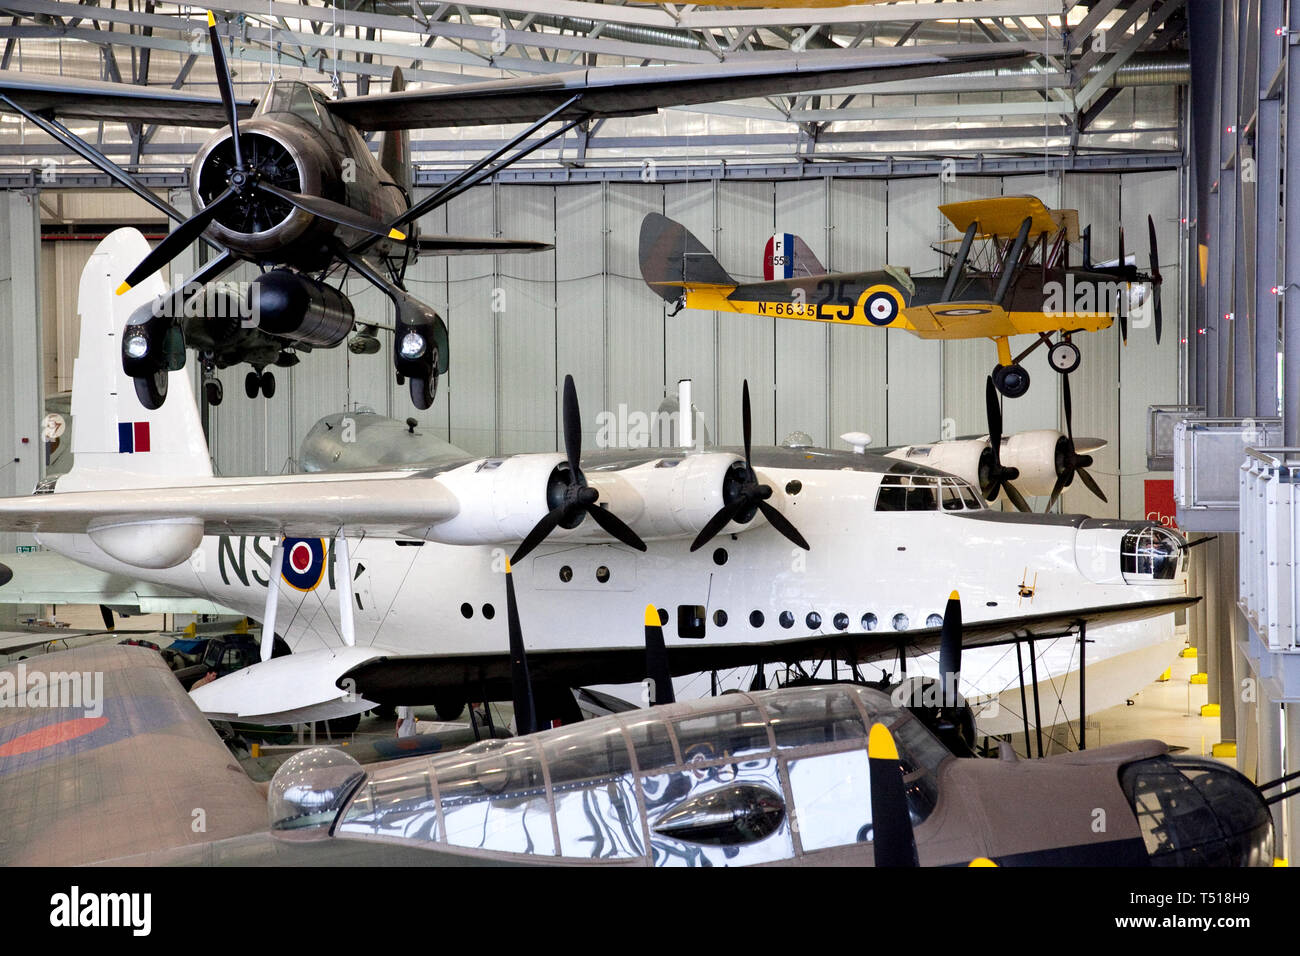 Flying Boat or Short Sunderland MR.5, in the American Air Museum at Duxford Imperial War Museum,Cambridgeshire, England. - Stock Image